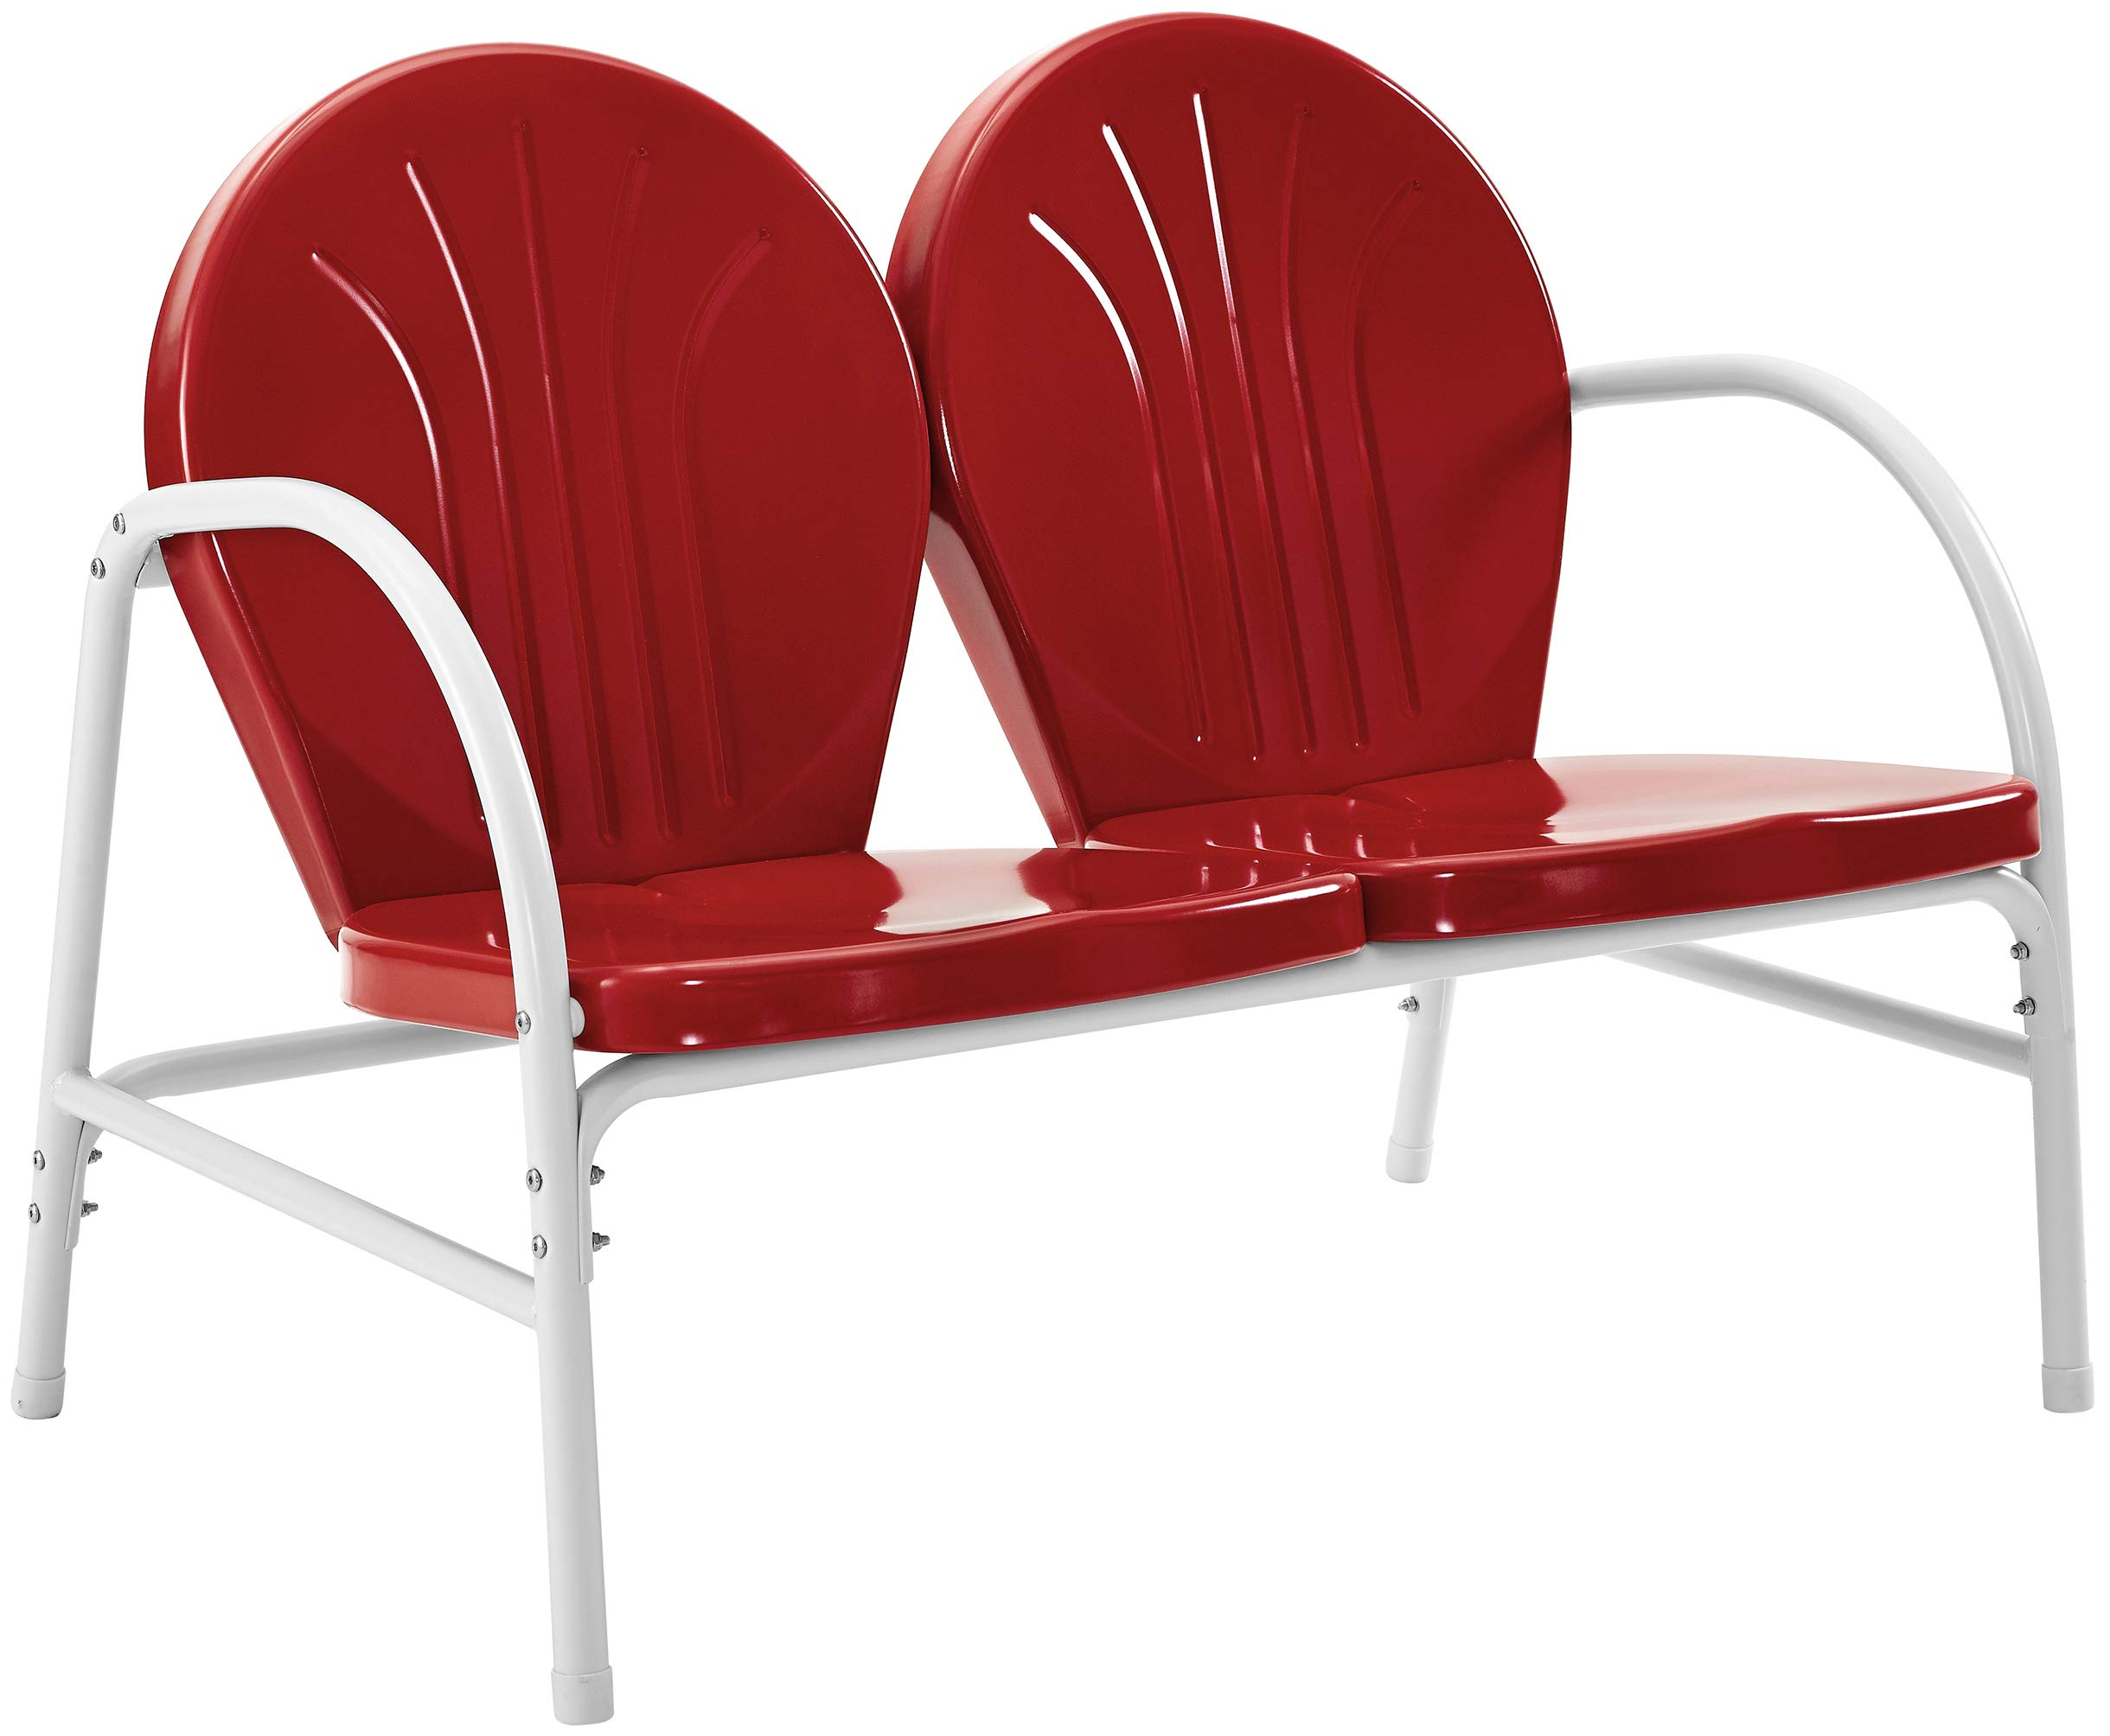 Crosley Furniture Griffith Metal Outdoor Loveseat - Red by Crosley Furniture